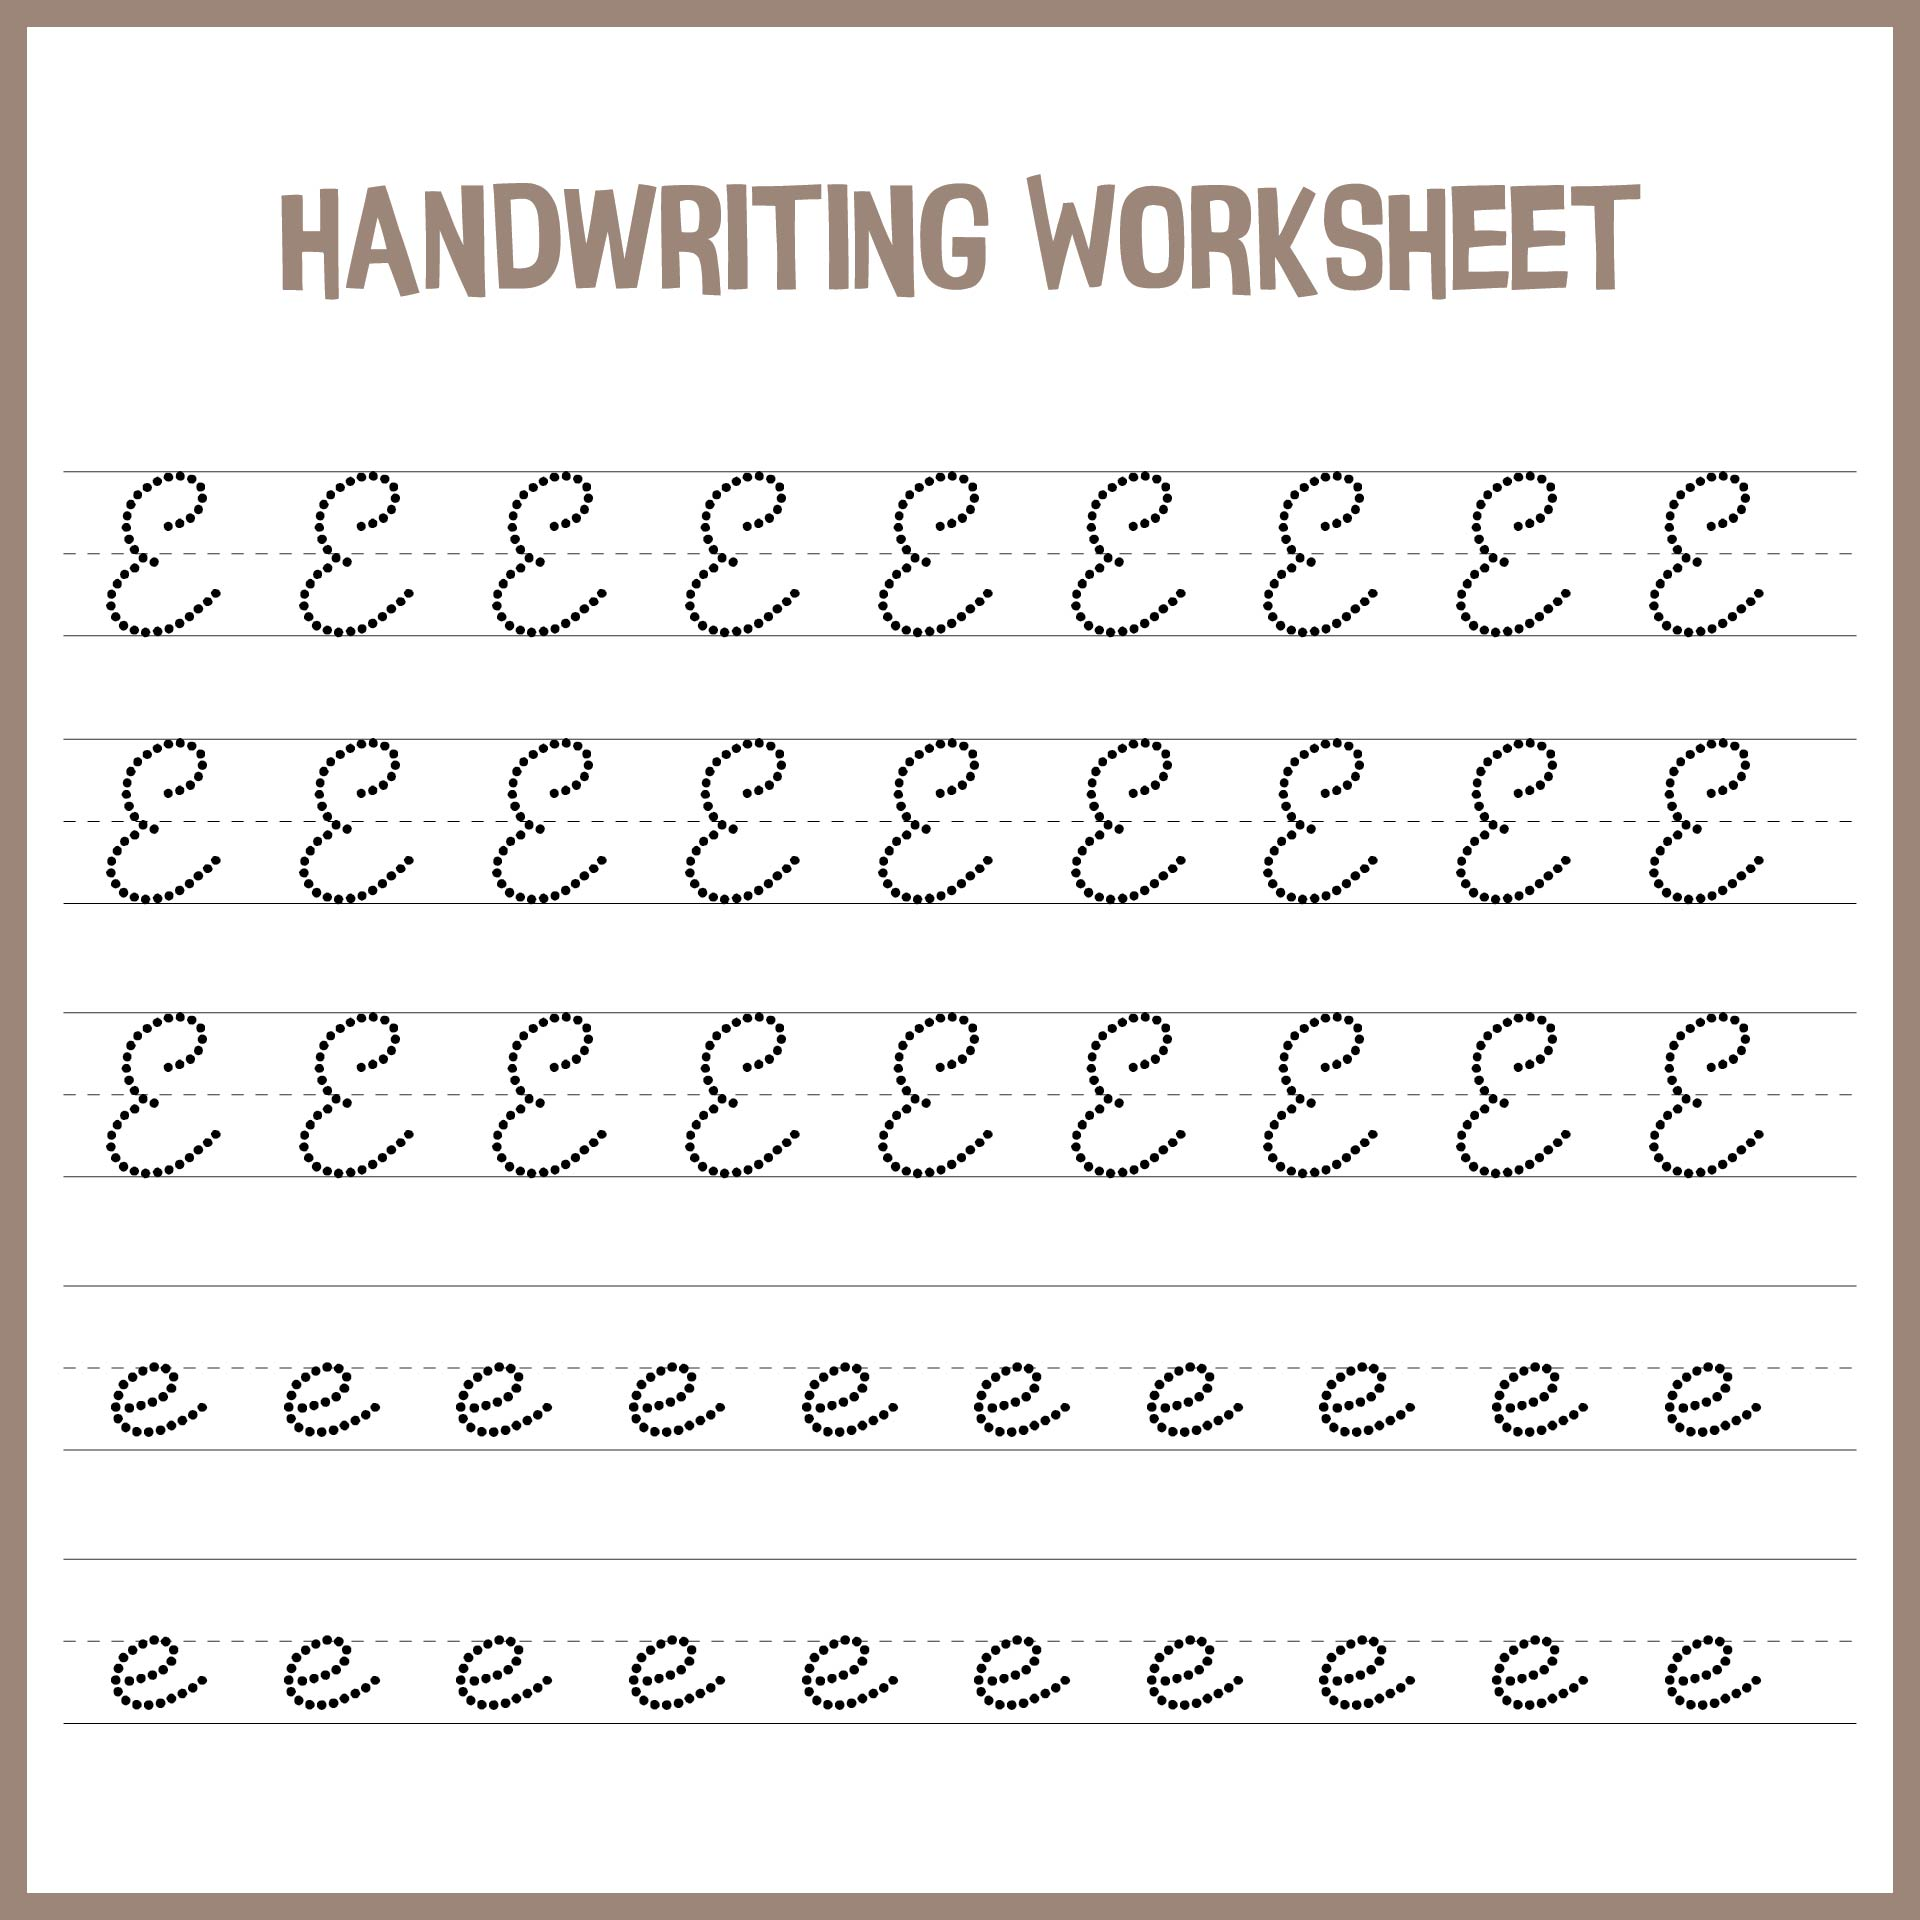 Free Worksheet Handwritting Worksheet kindergarten handwriting worksheet free printable of worksheets practice writing